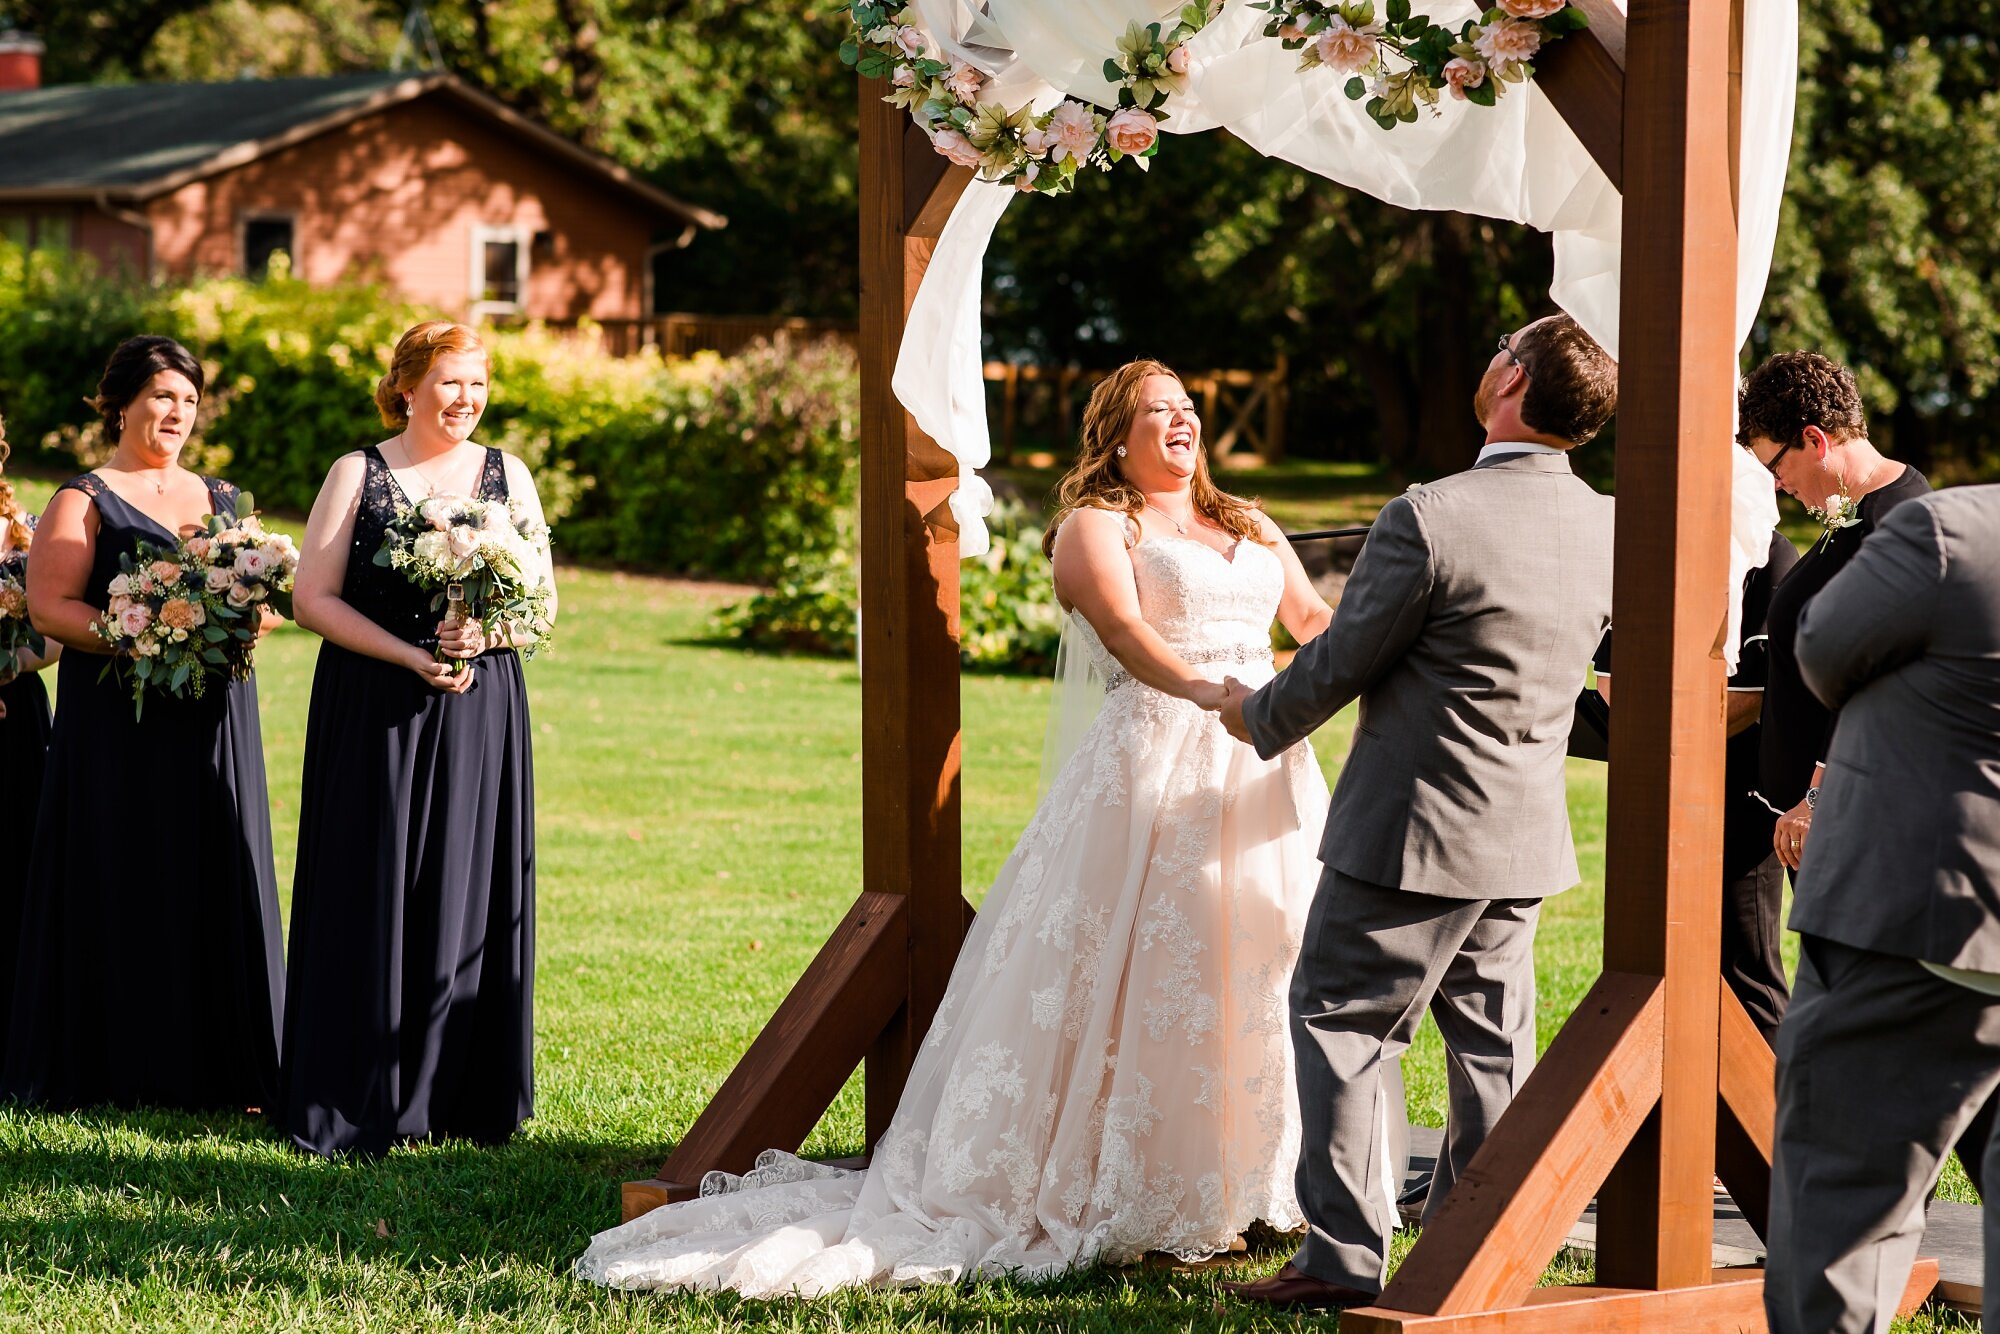 Amber Langerud Photography_Lake Park Minnesota, Outdoor Barn Wedding With Horses_6991.jpg